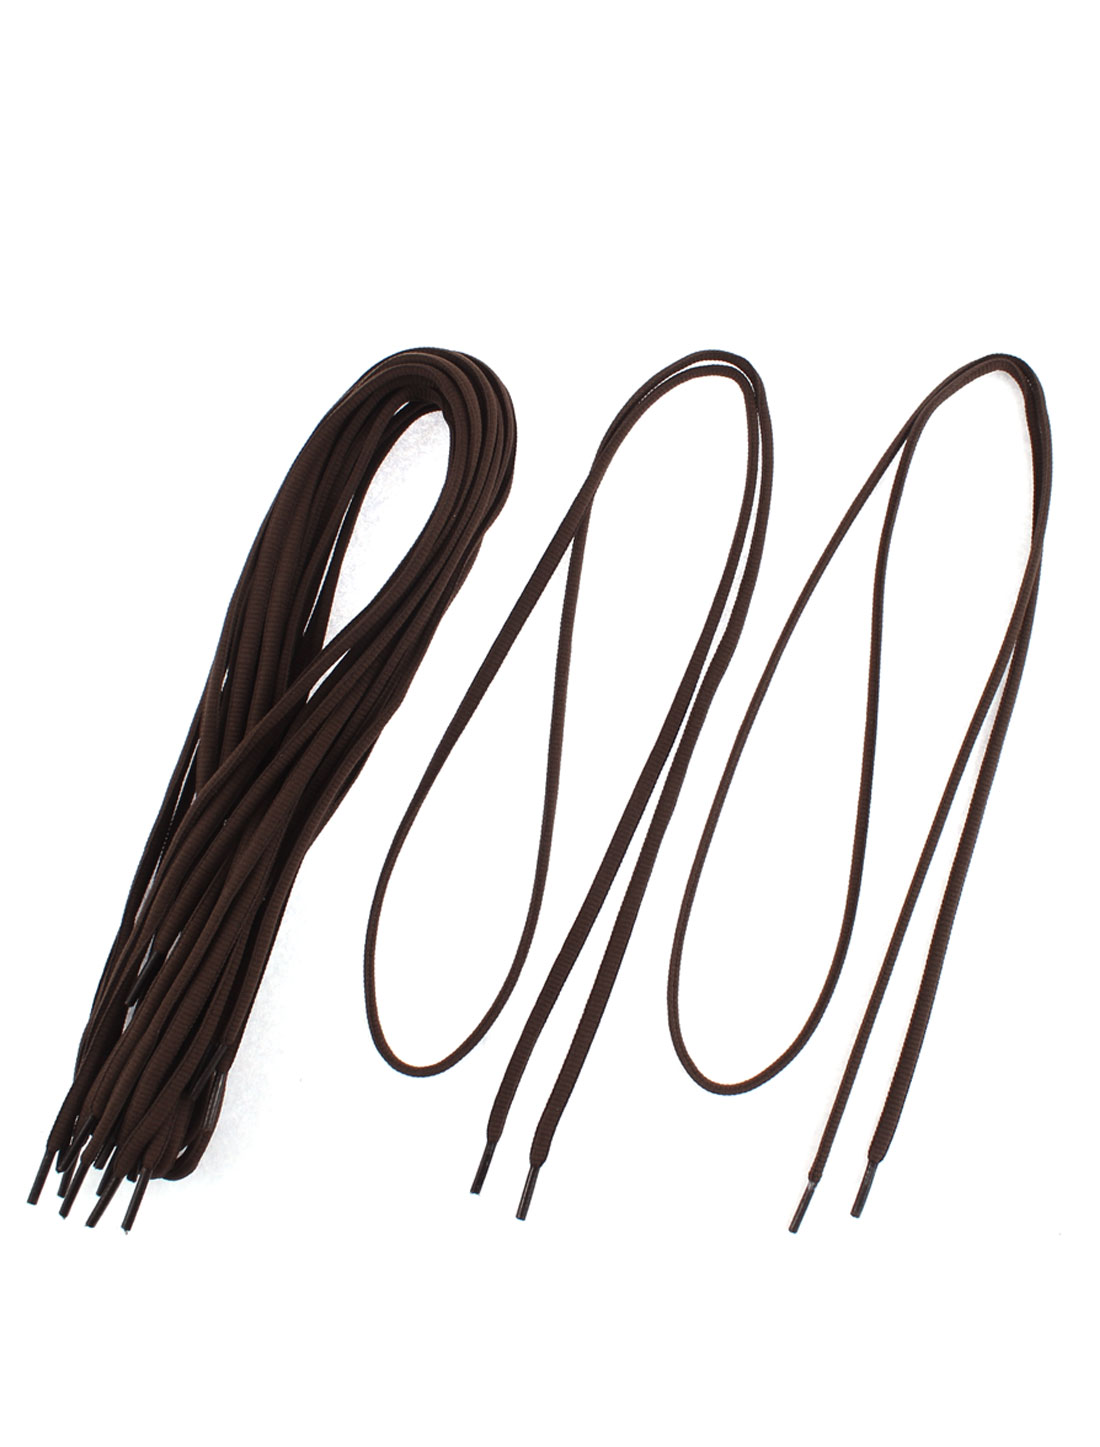 Skateboard Hiking Sport Shoes Shoelaces String Chocolate Color 5 Pairs